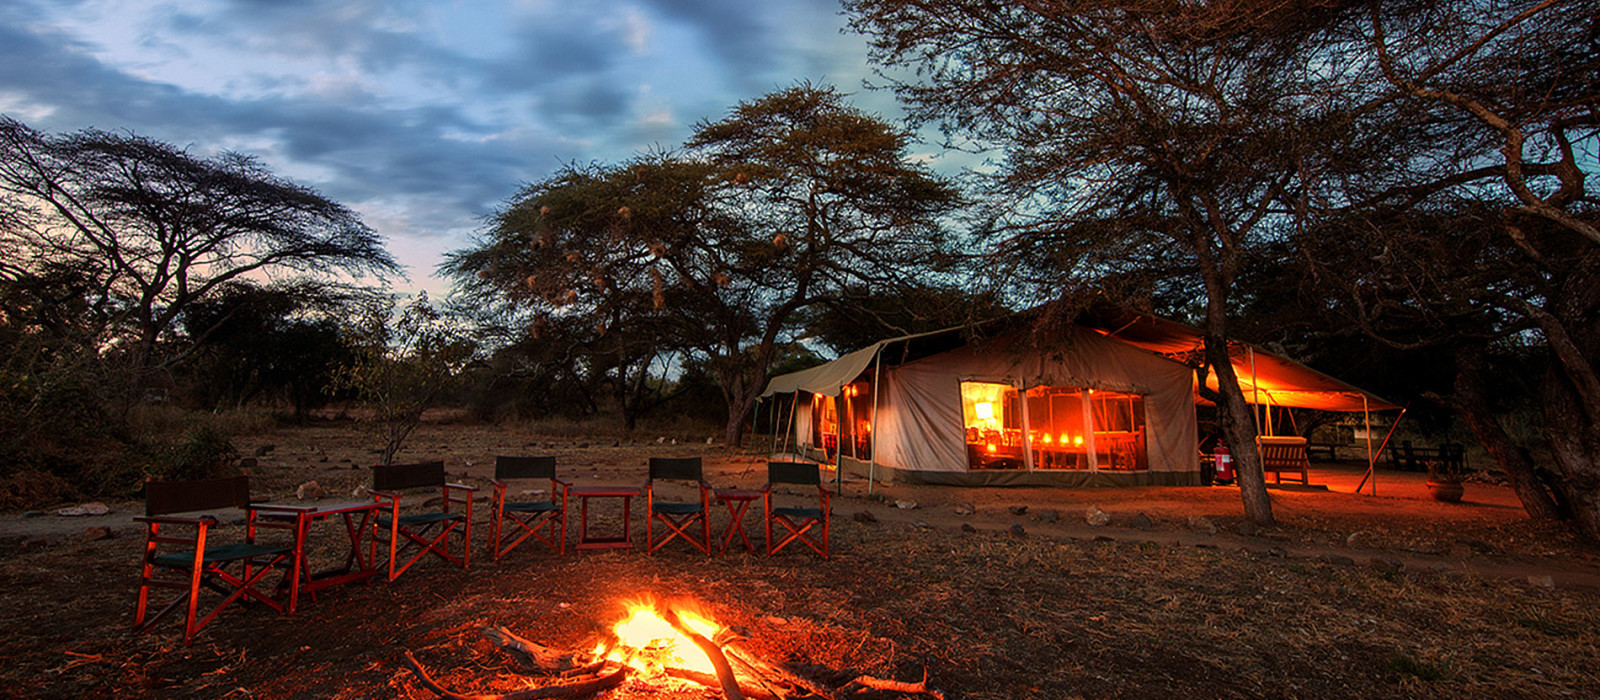 Hotel Adventure Camp Kenia